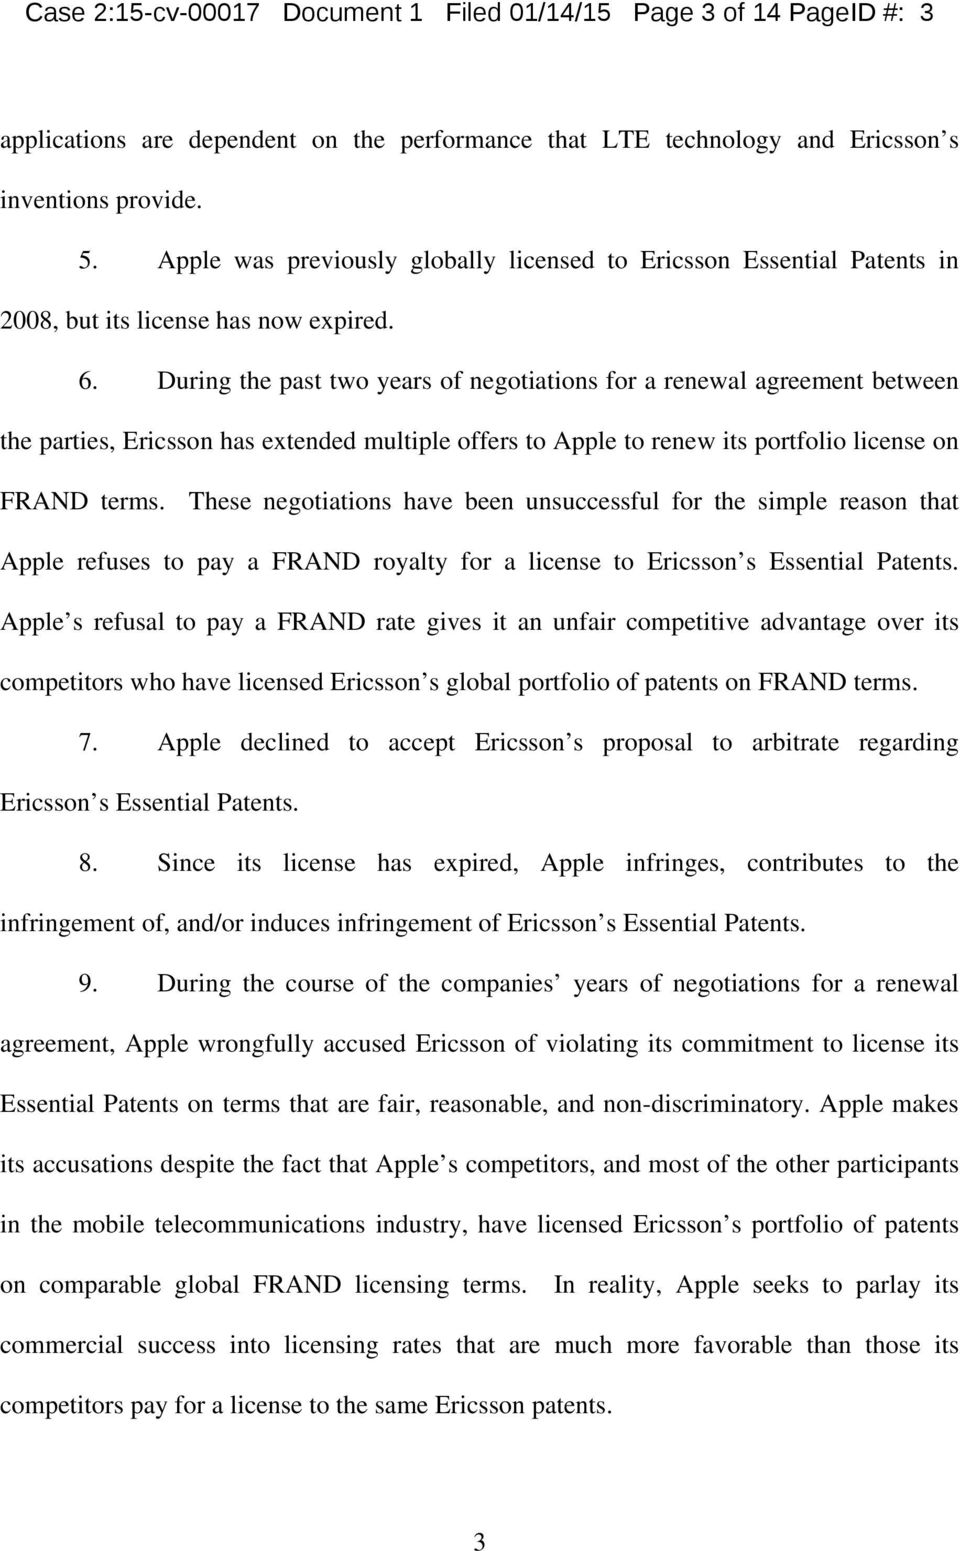 During the past two years of negotiations for a renewal agreement between the parties, Ericsson has extended multiple offers to Apple to renew its portfolio license on FRAND terms.